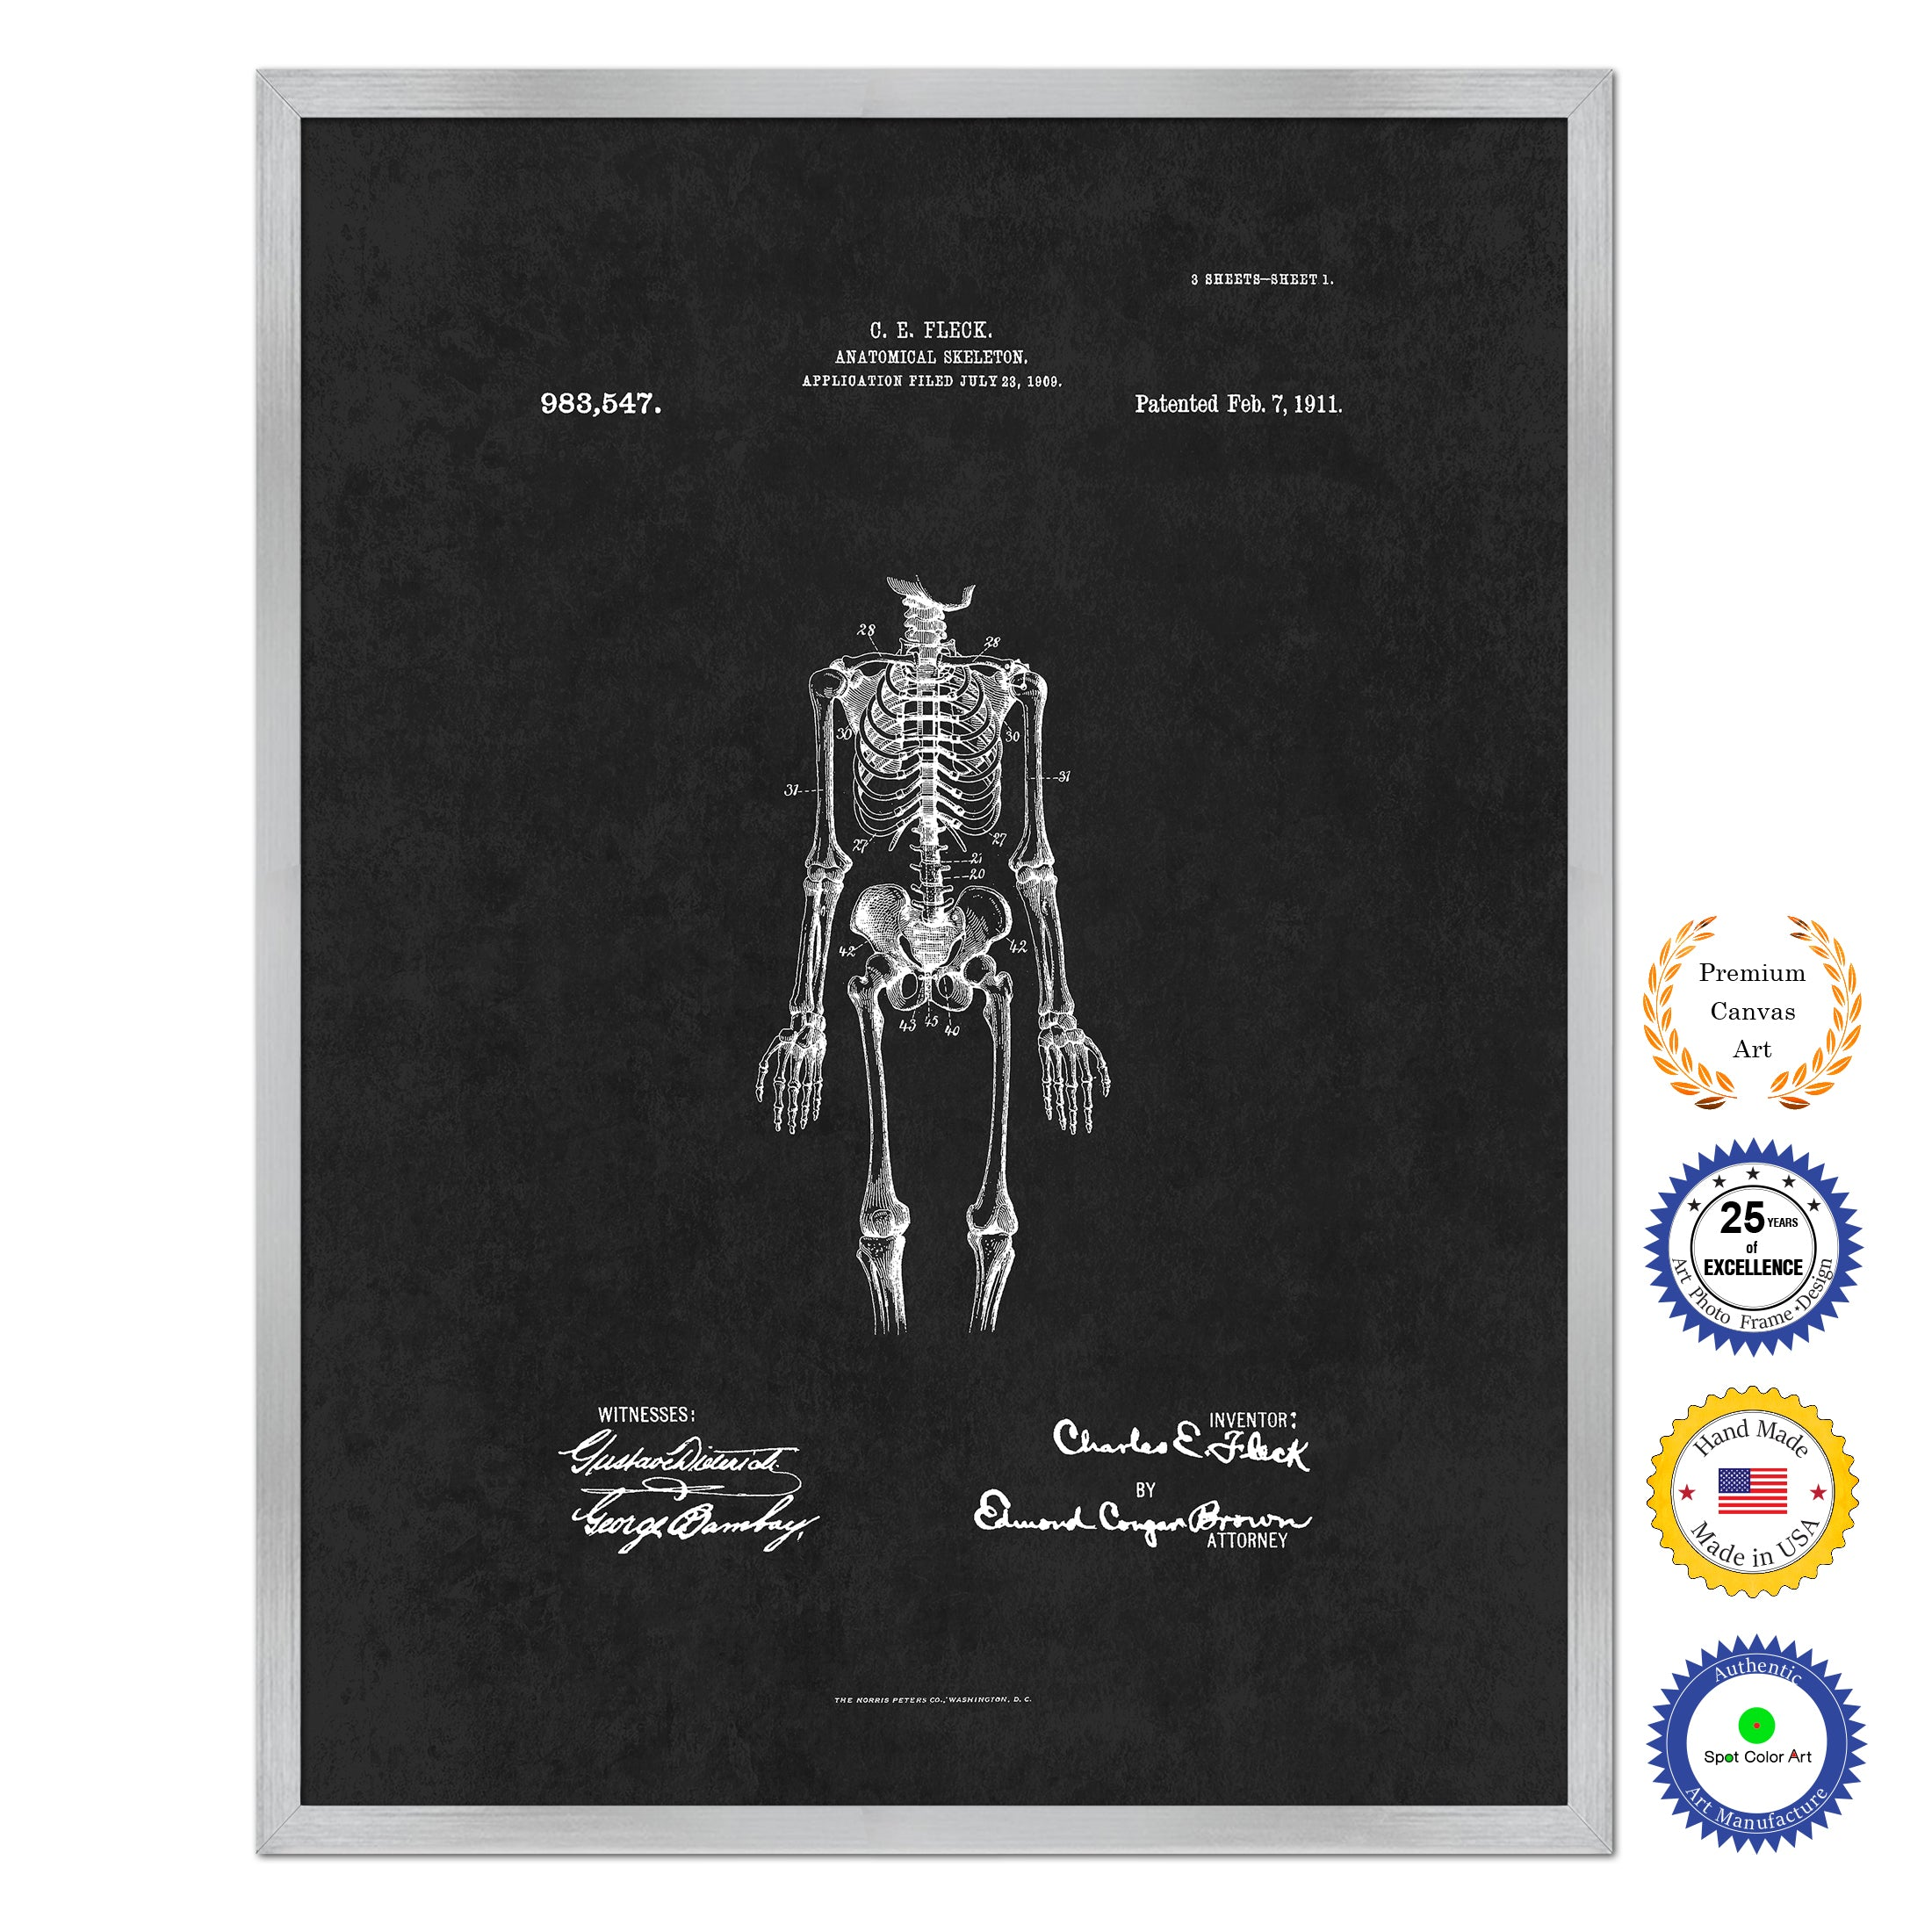 1911 Doctor Anatomical Skeleton Antique Patent Artwork Silver Framed Canvas Home Office Decor Great for Doctor Paramedic Surgeon Hospital Medical Student